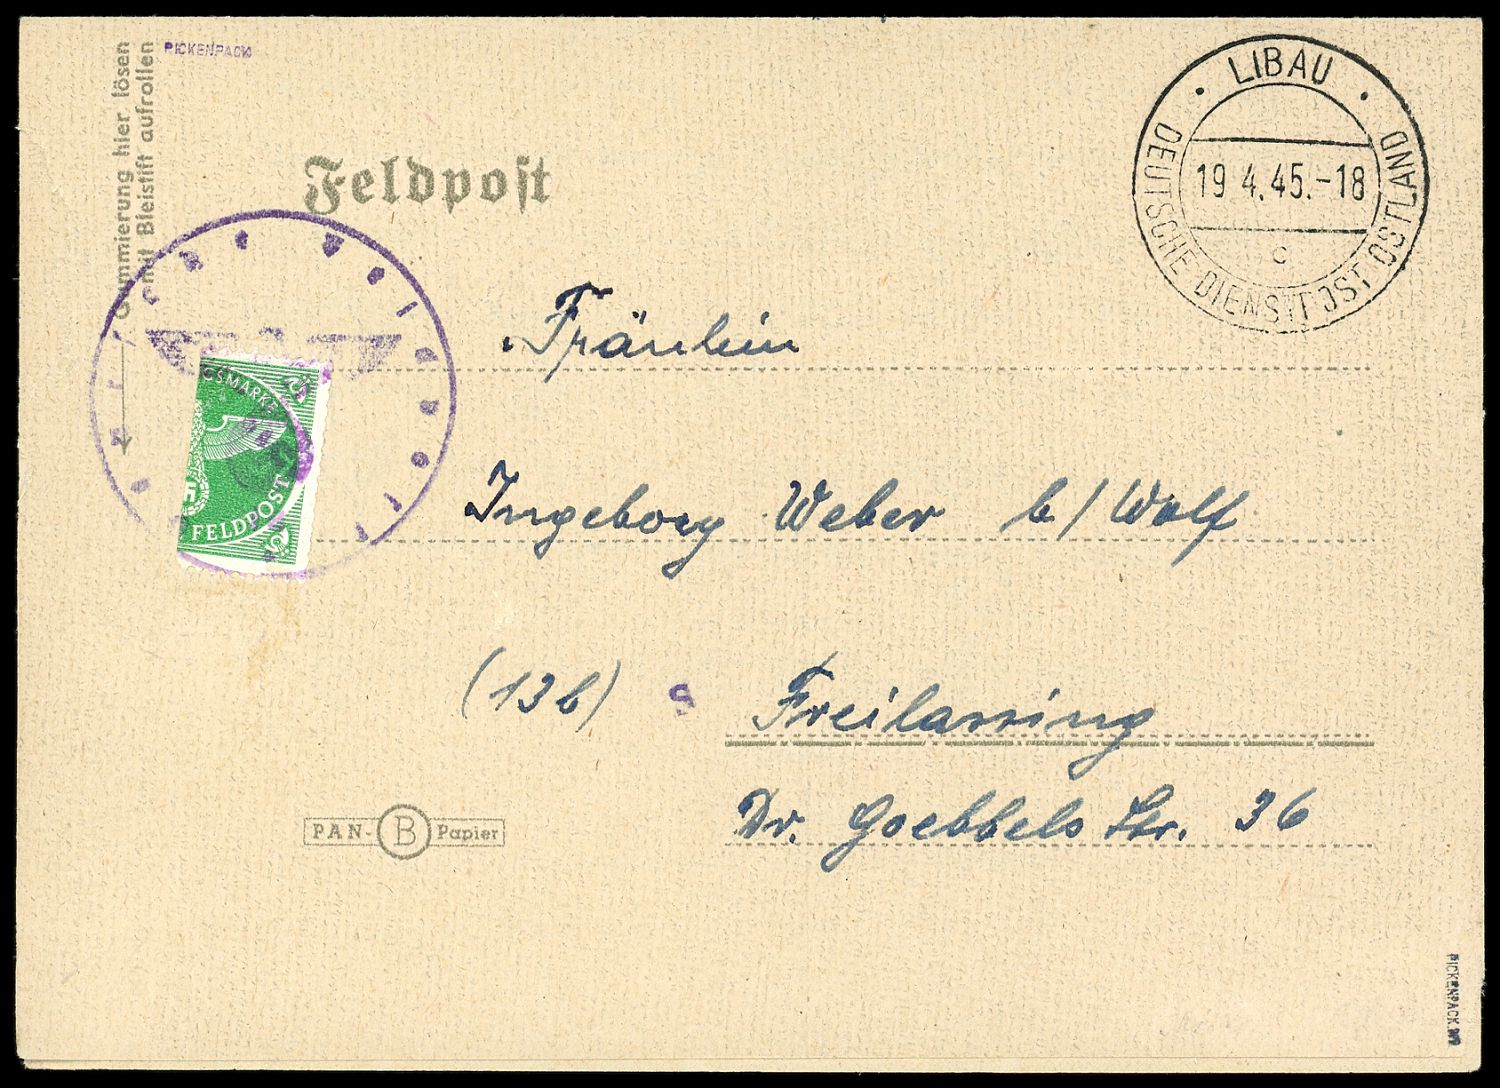 Lot 11110 - feldpostmarken  -  Auktionshaus Klüttermann GmbH Auction number 1